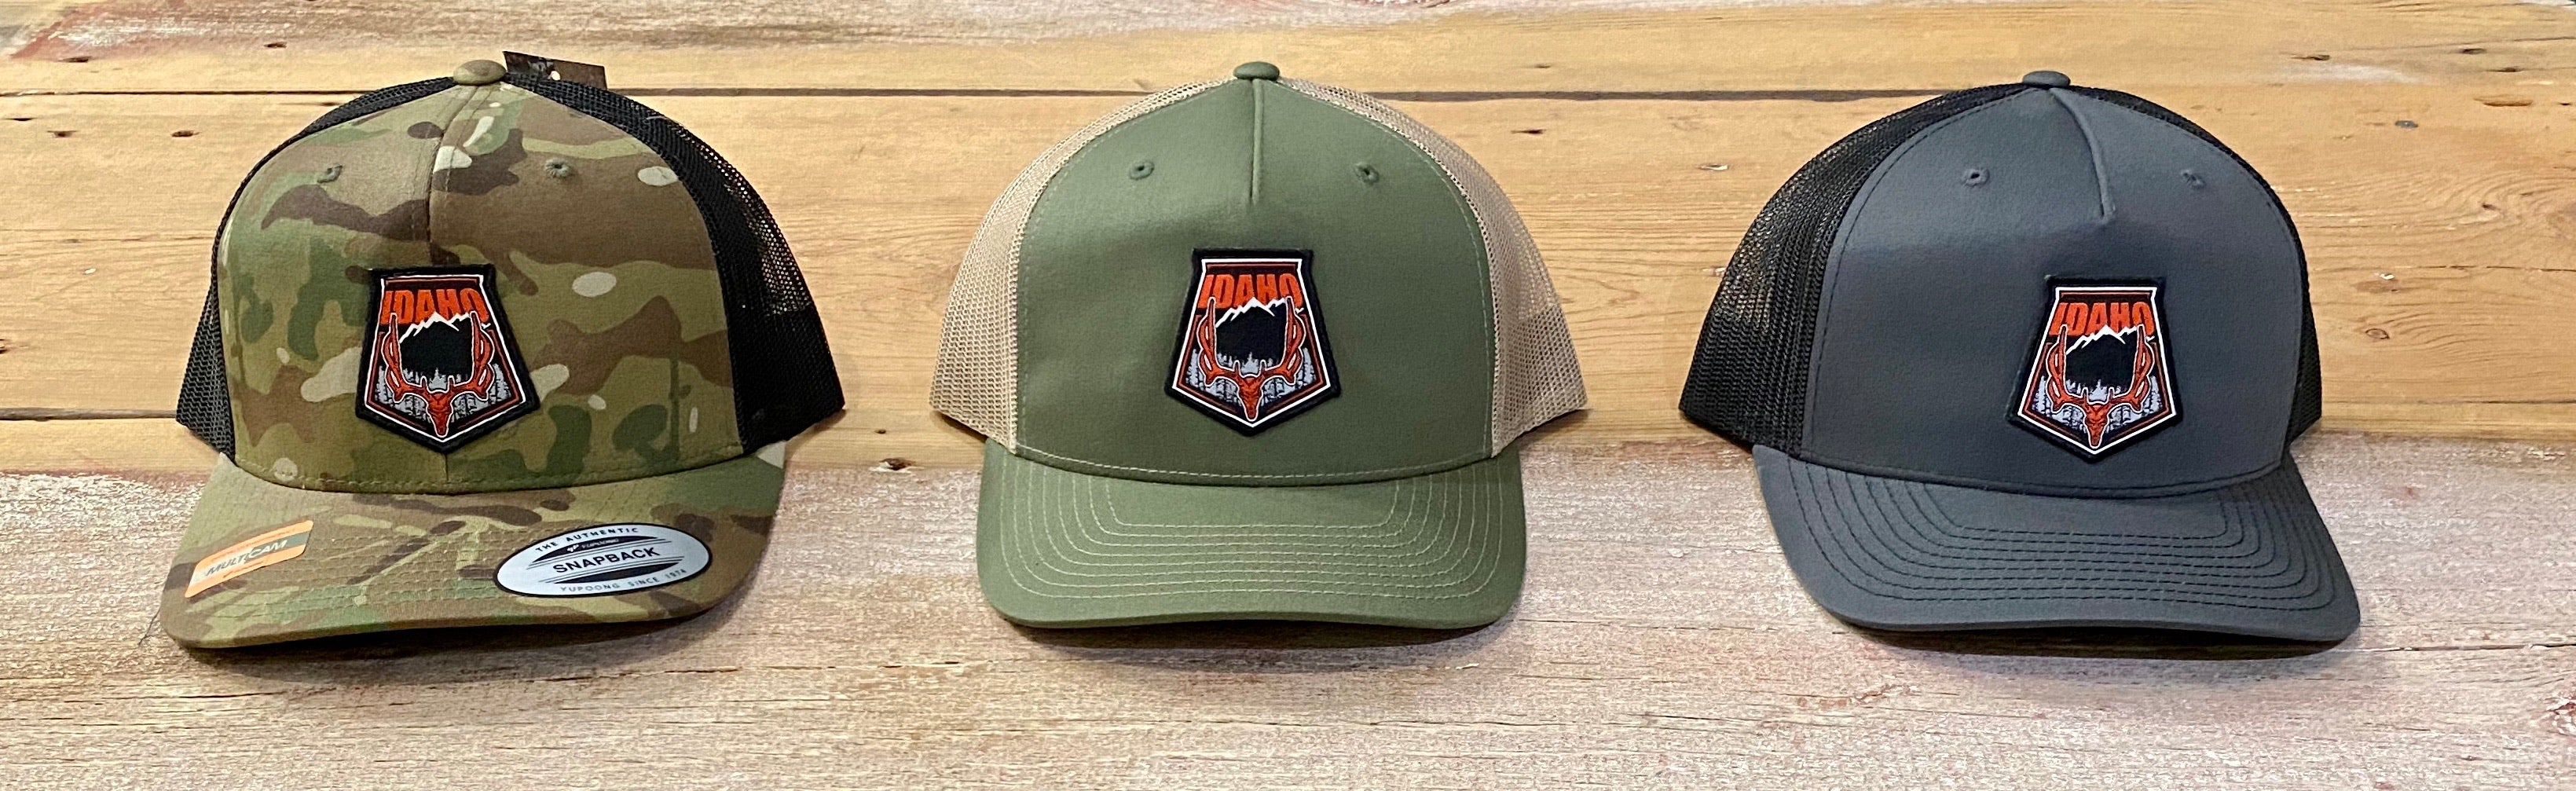 IDAHO MD PATCH HAT